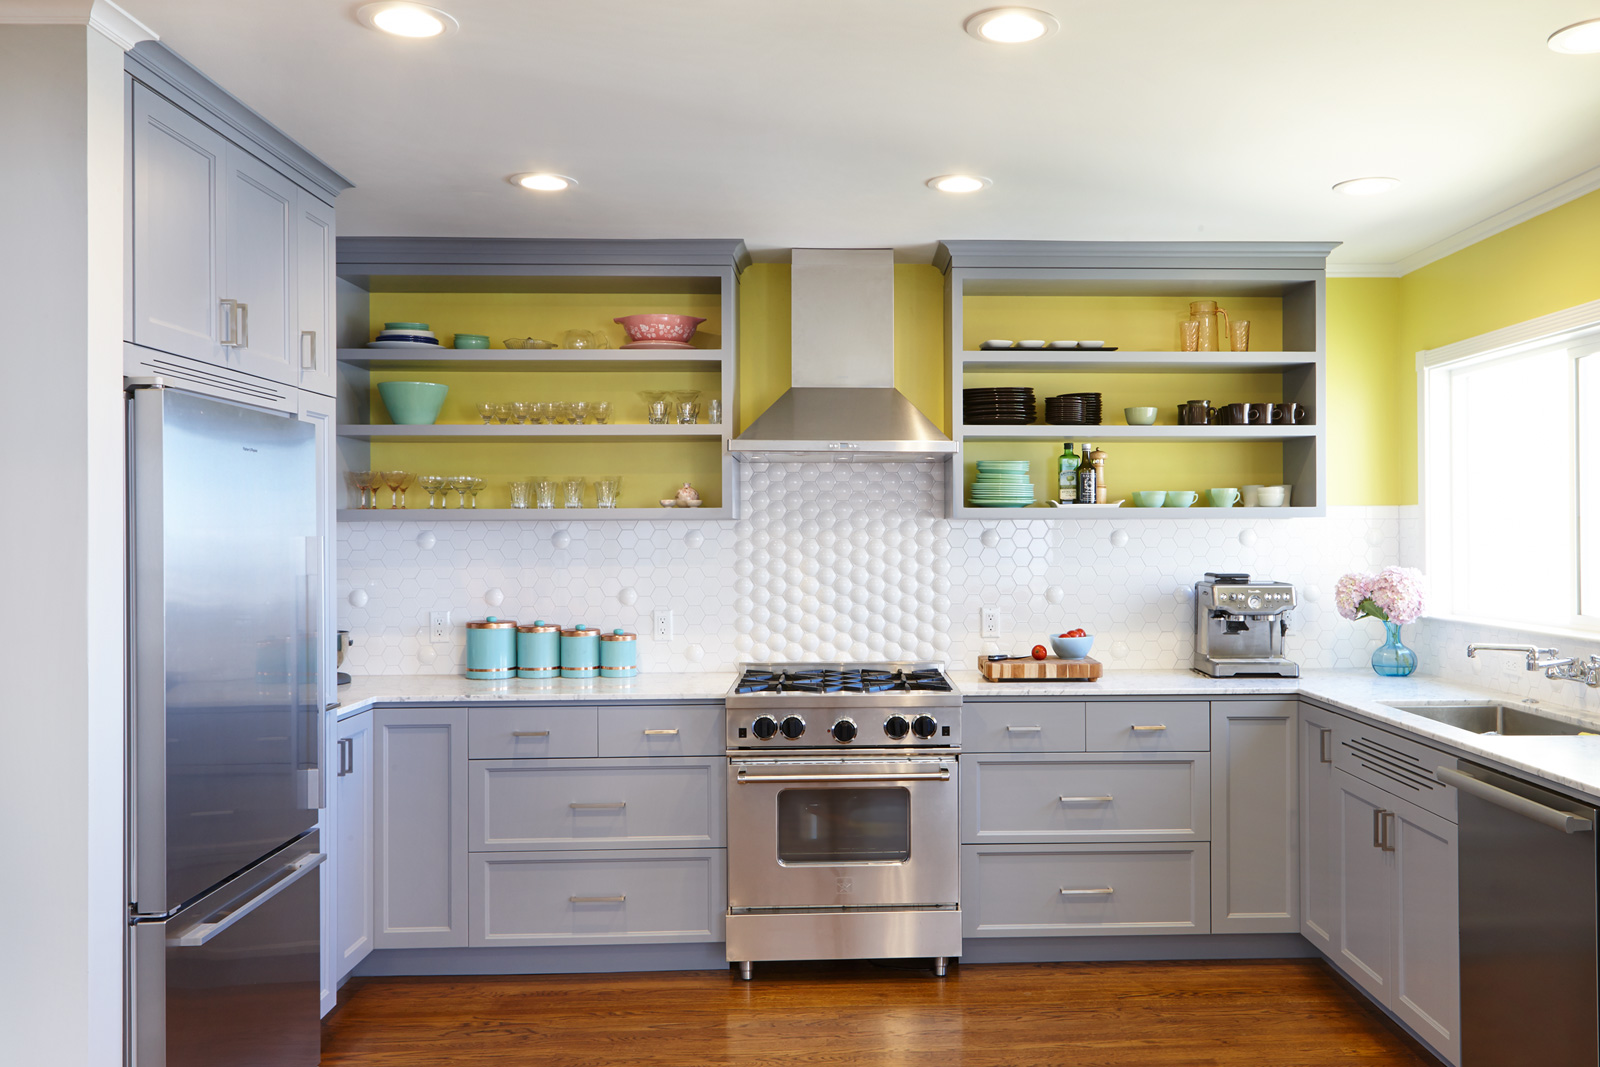 Best Paint for Kitchen Cabinets Paint for Kitchens HouseLogic